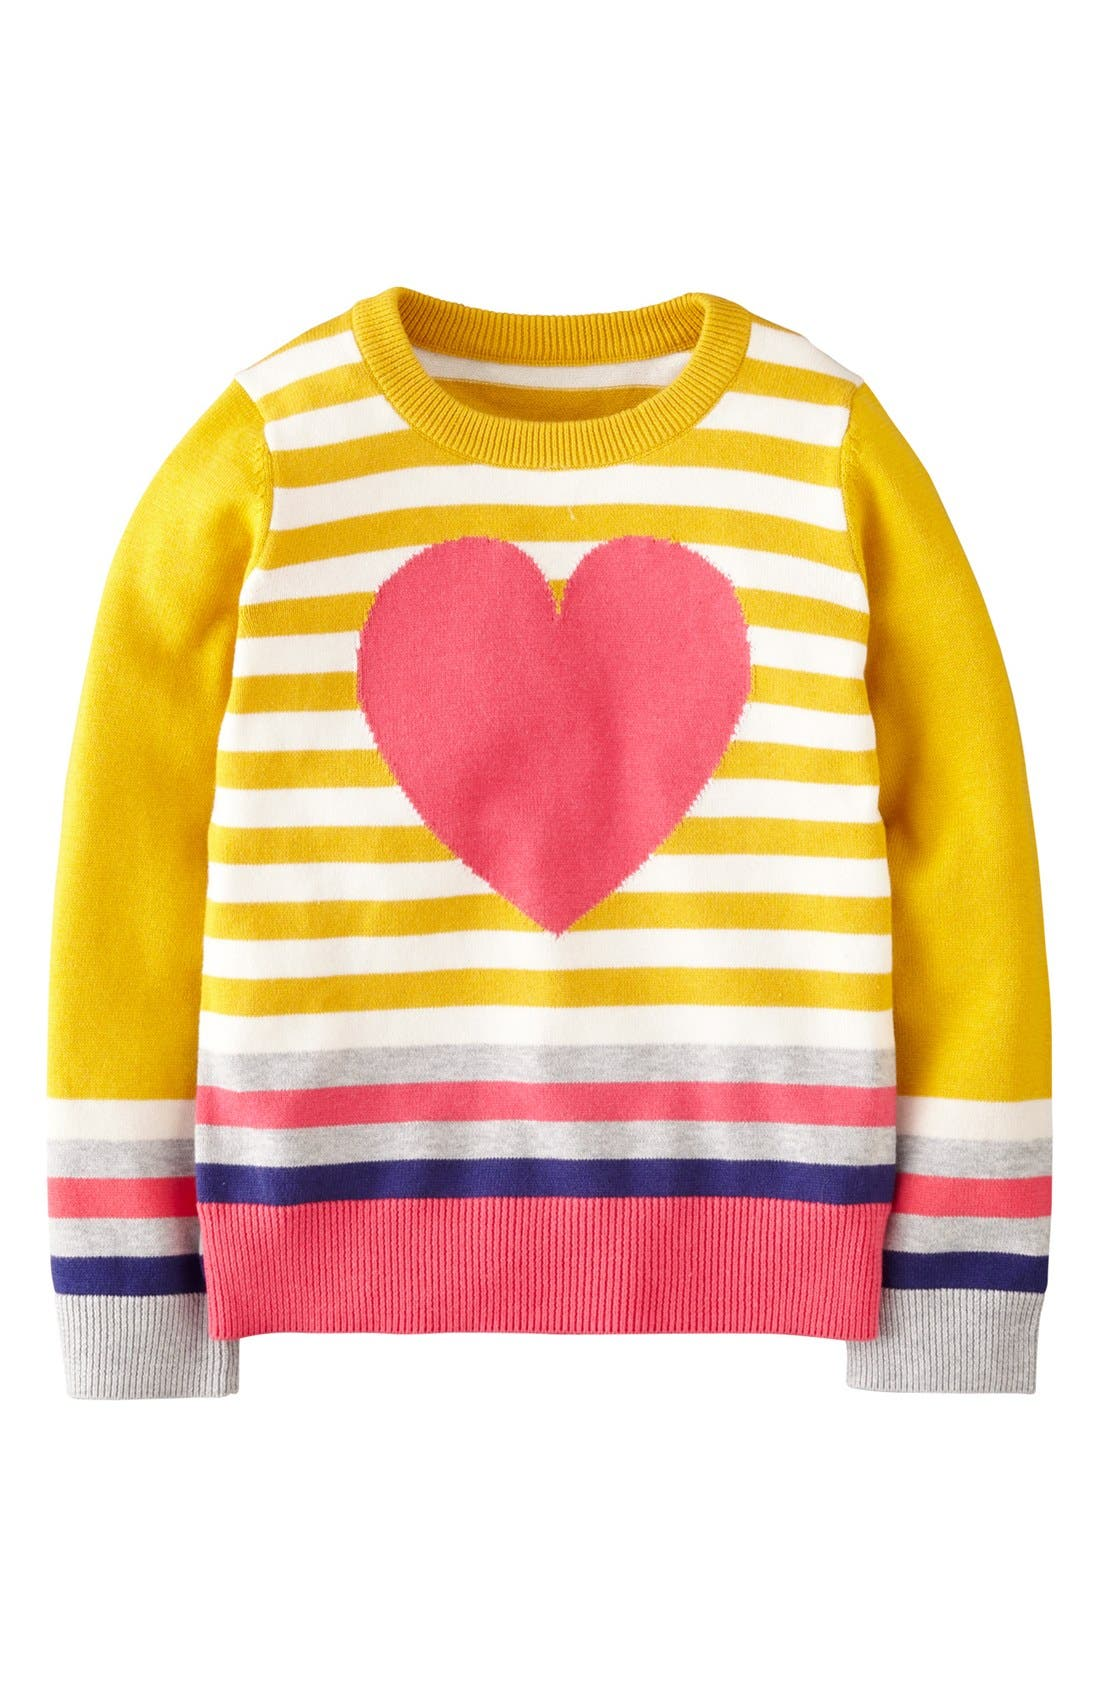 Alternate Image 1 Selected - Mini Boden Intarsia Sweater (Toddler Girls, Little Girls & Big Girls)